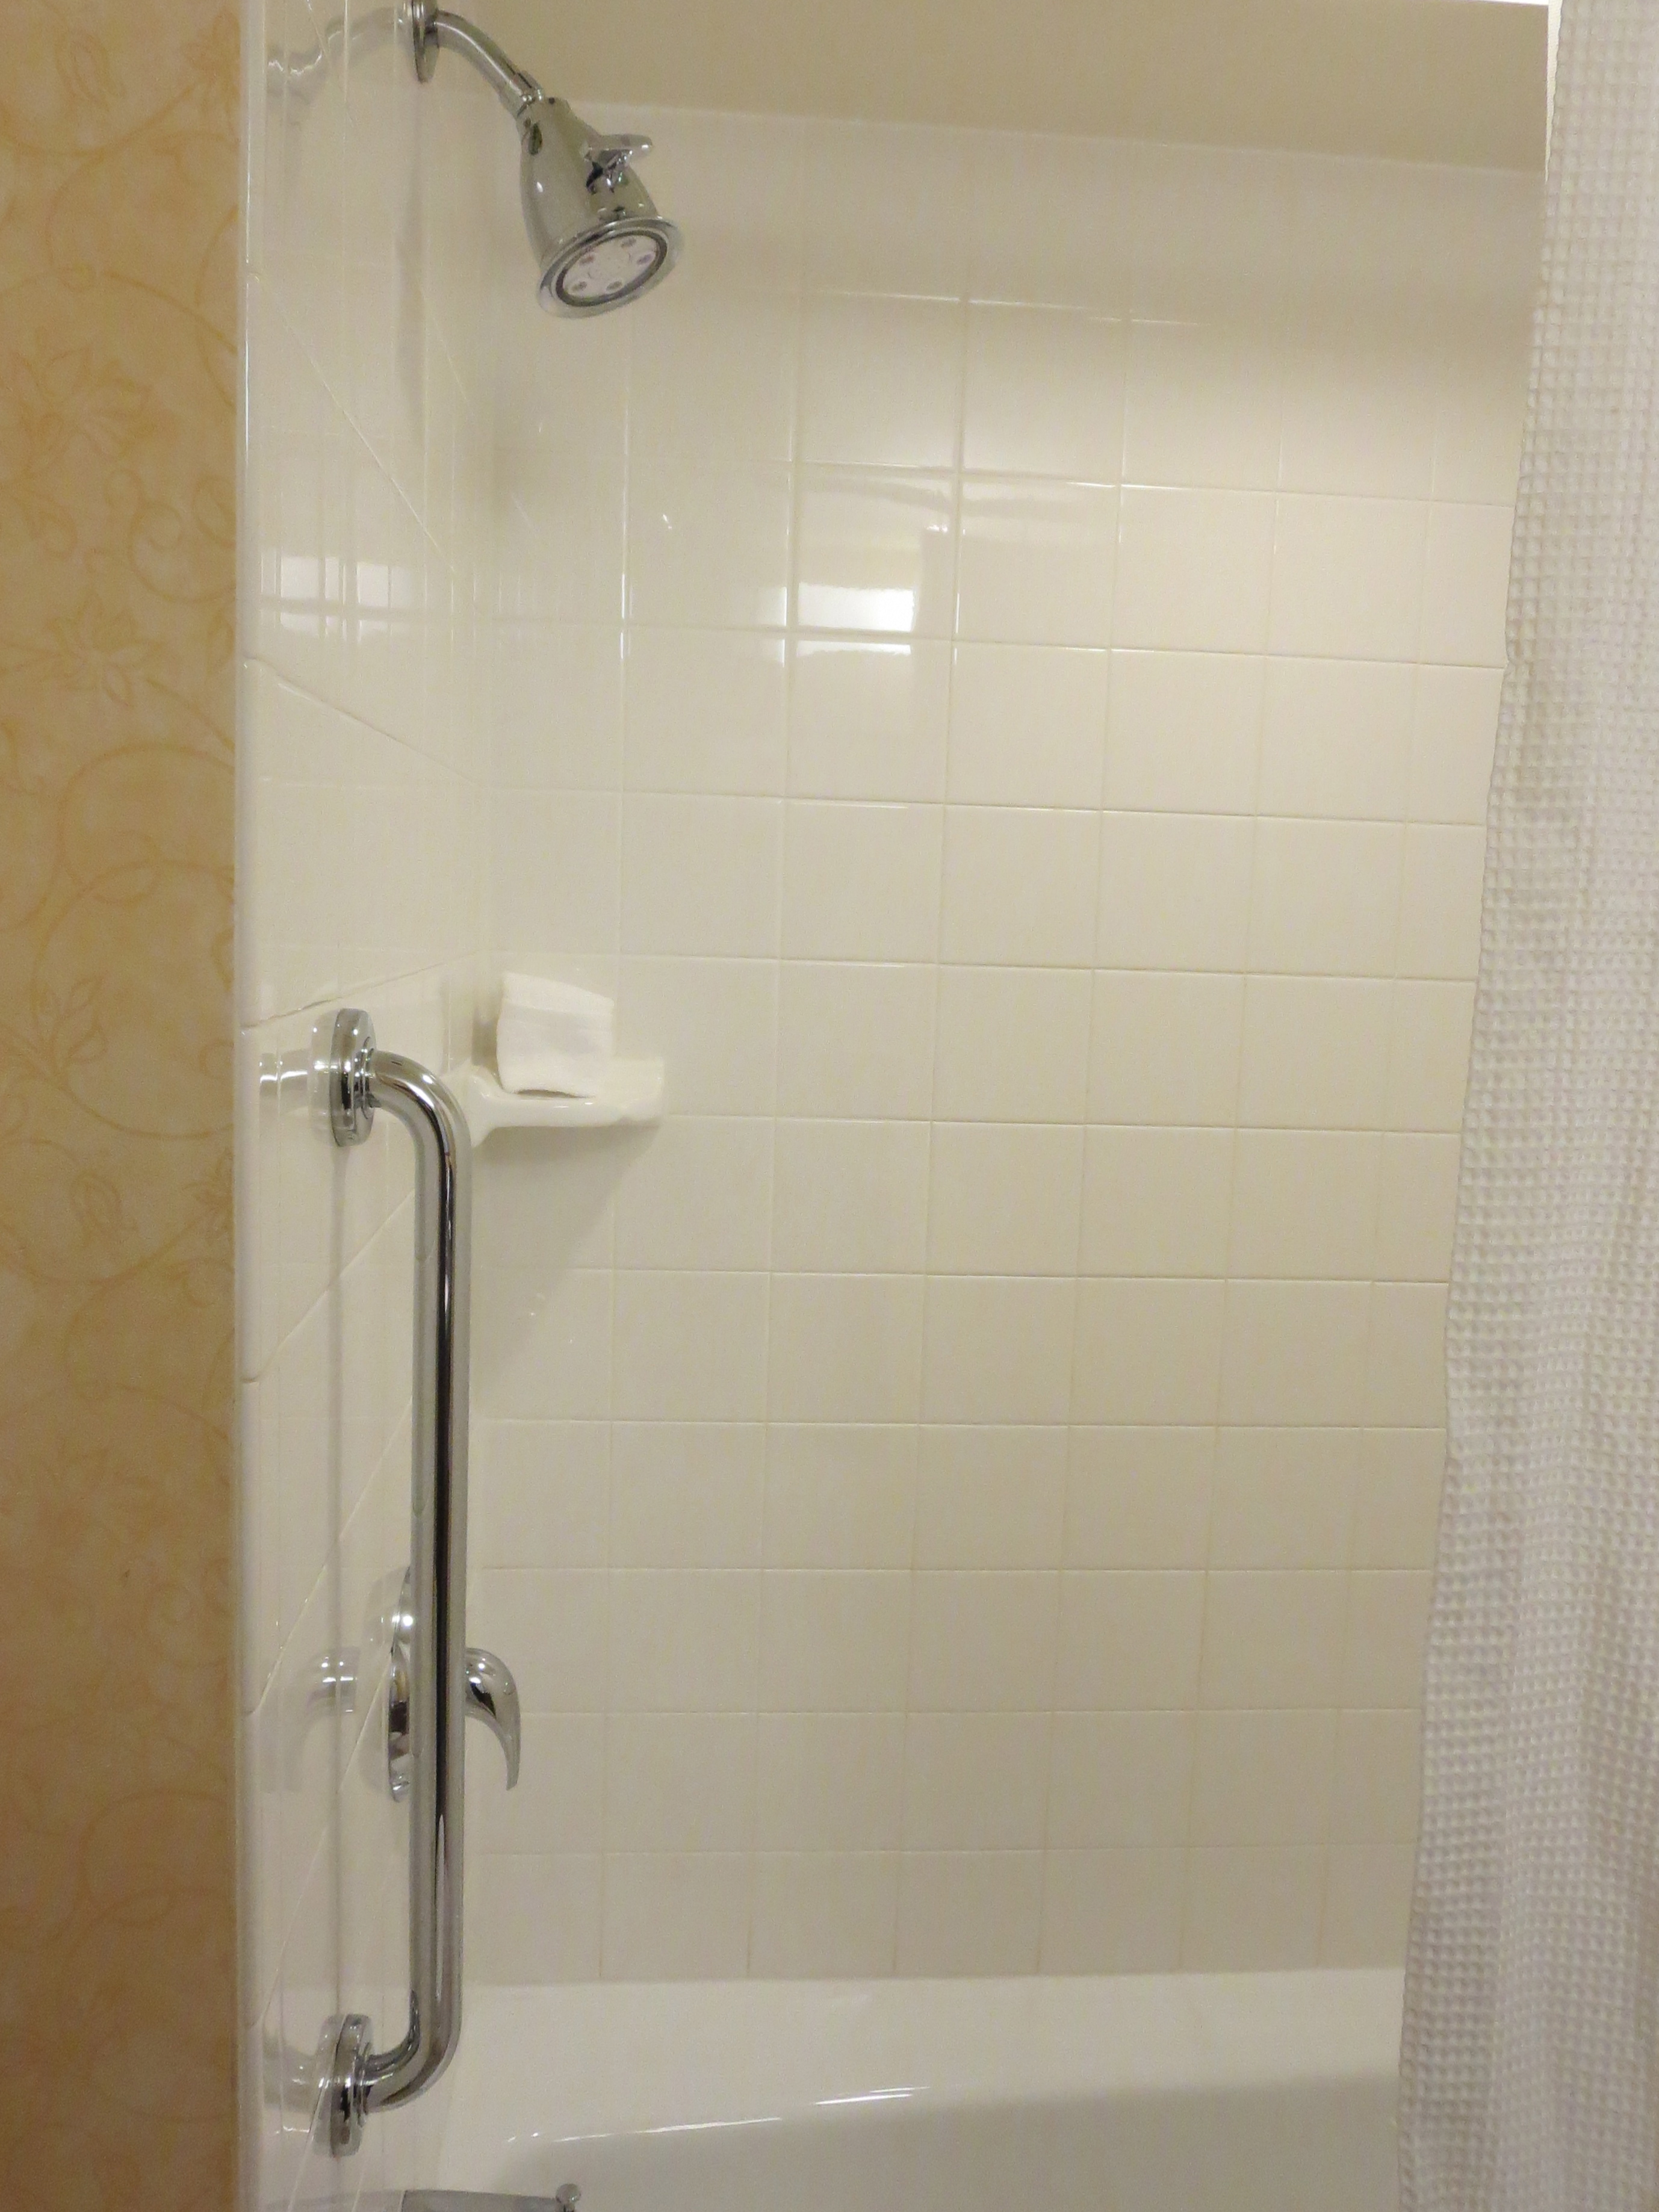 This Is A Plastic Shower. Bane Of This Blogu0027s Existence.